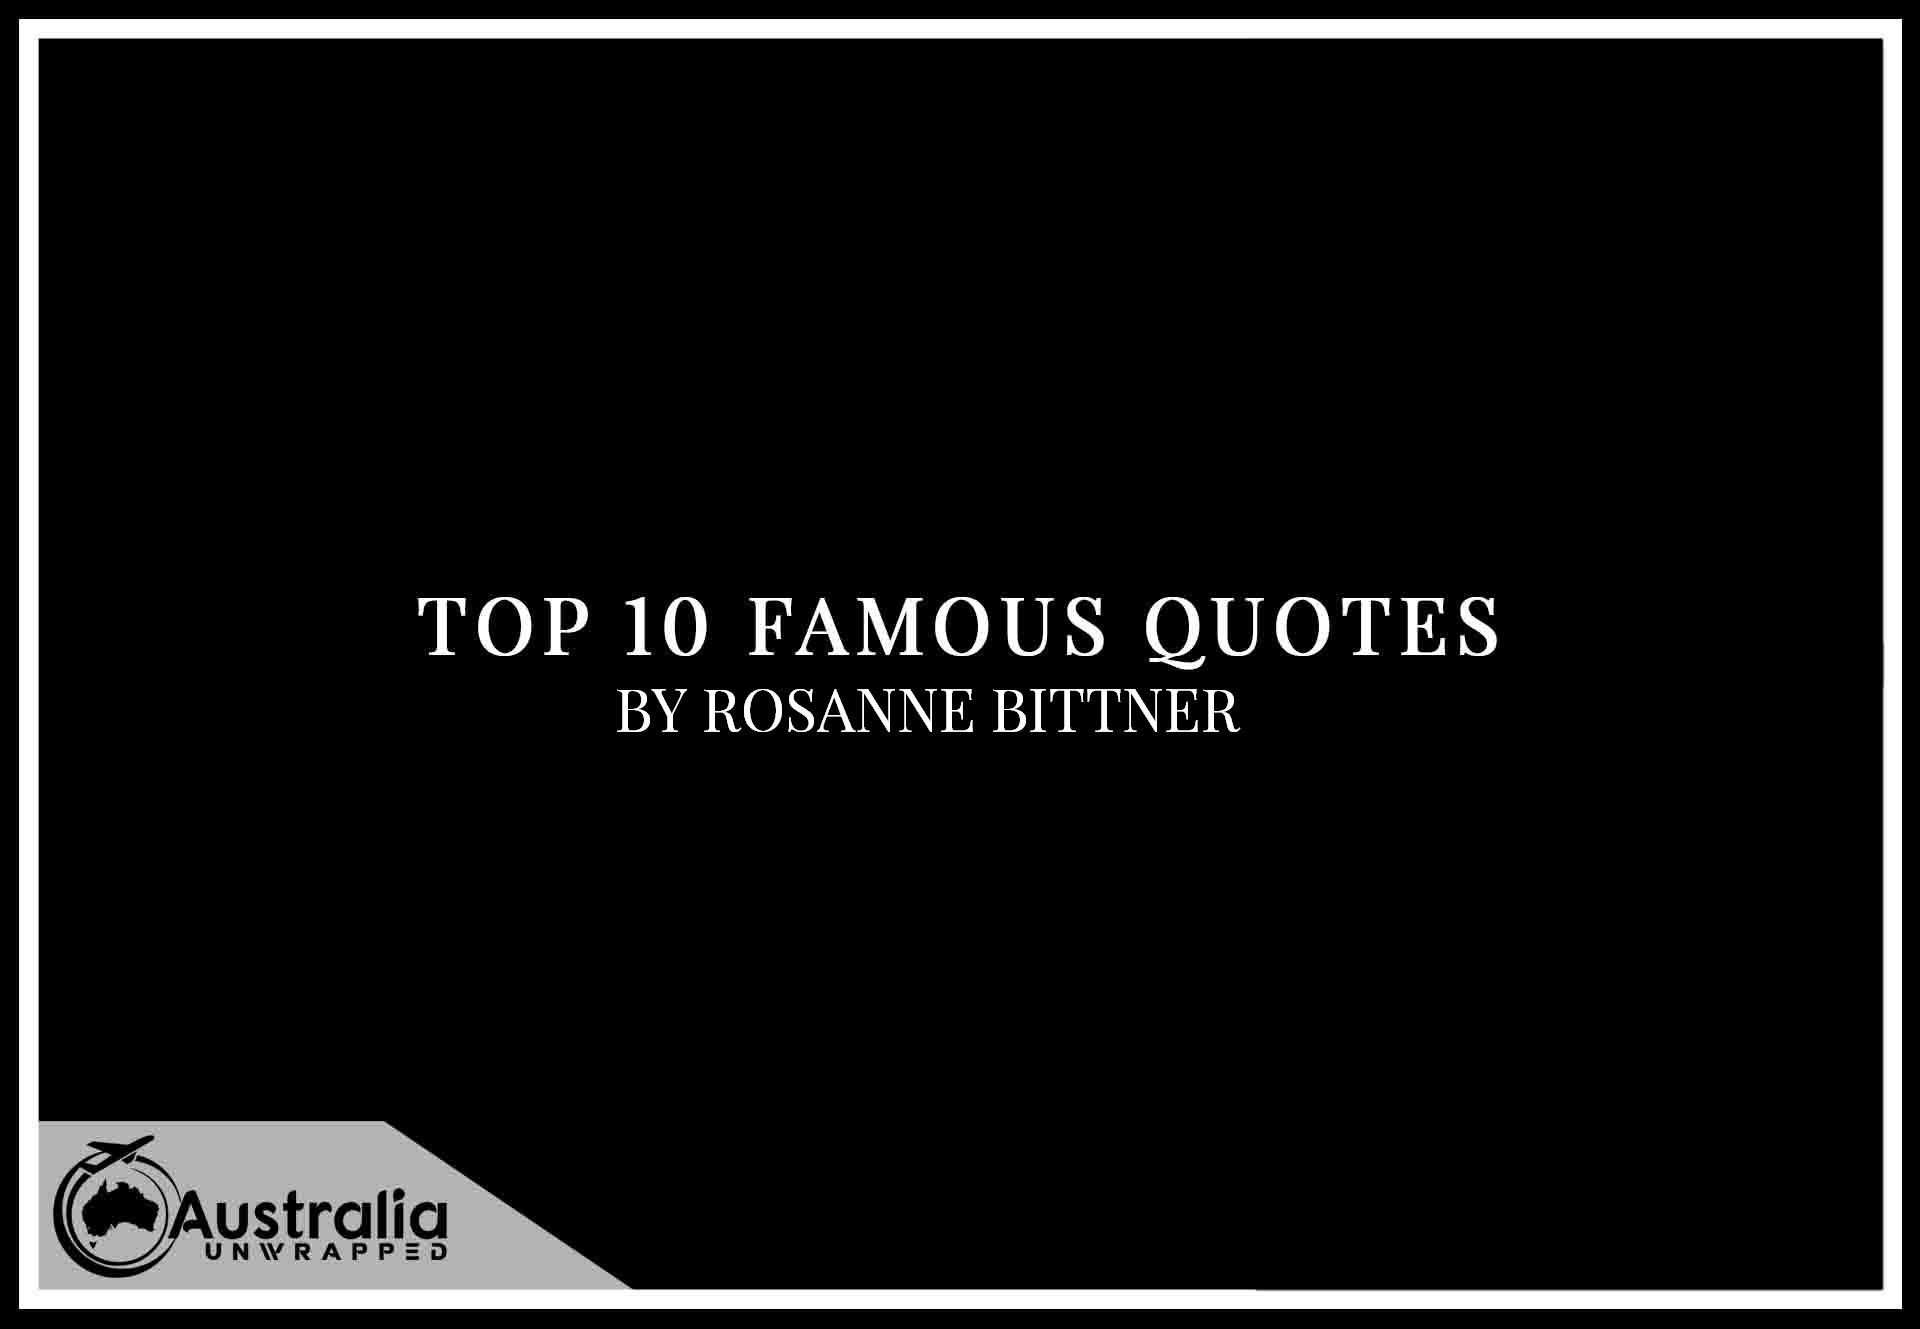 Top 10 Famous Quotes by Author Rosanne Bittner